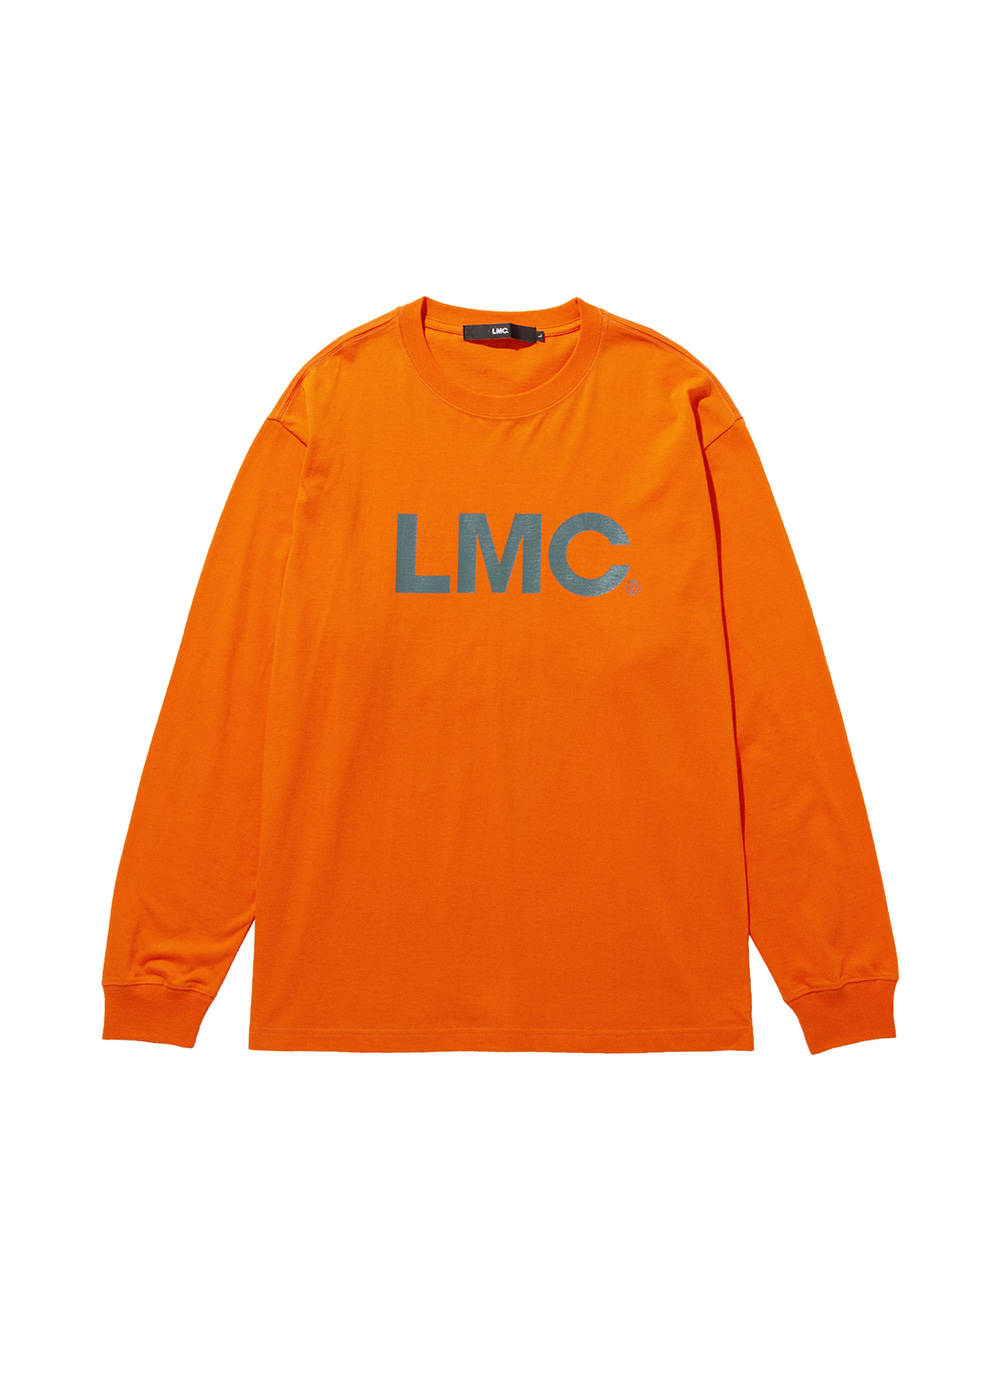 LMC OG LONG SLV TEE orange